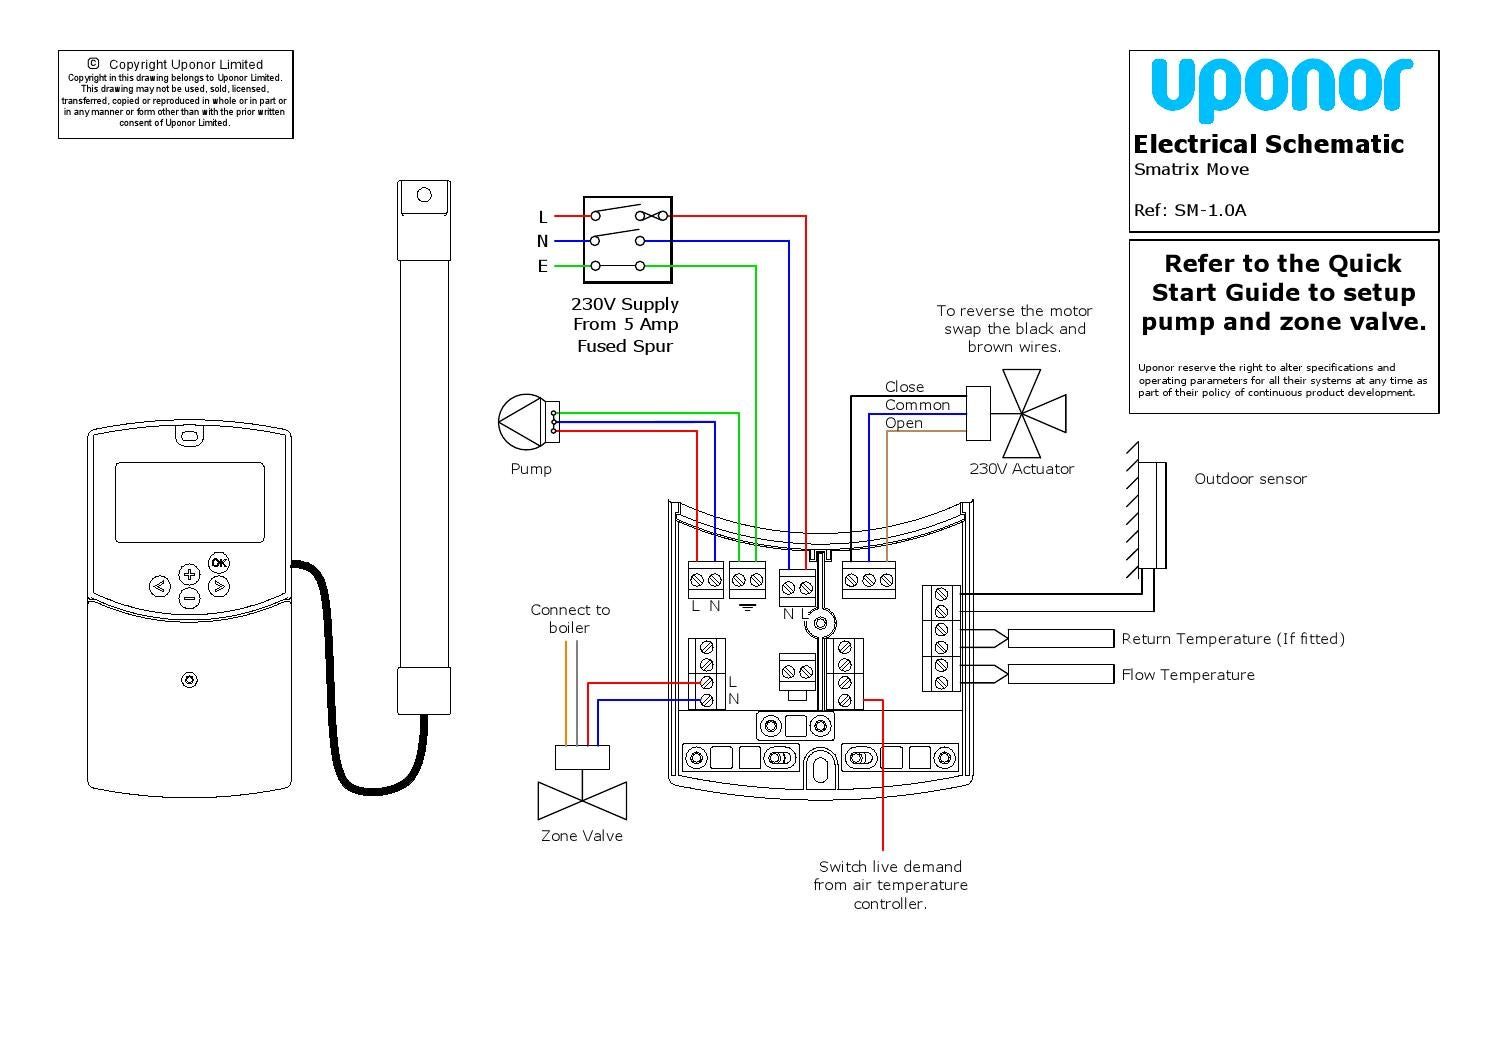 fused spur wiring diagram